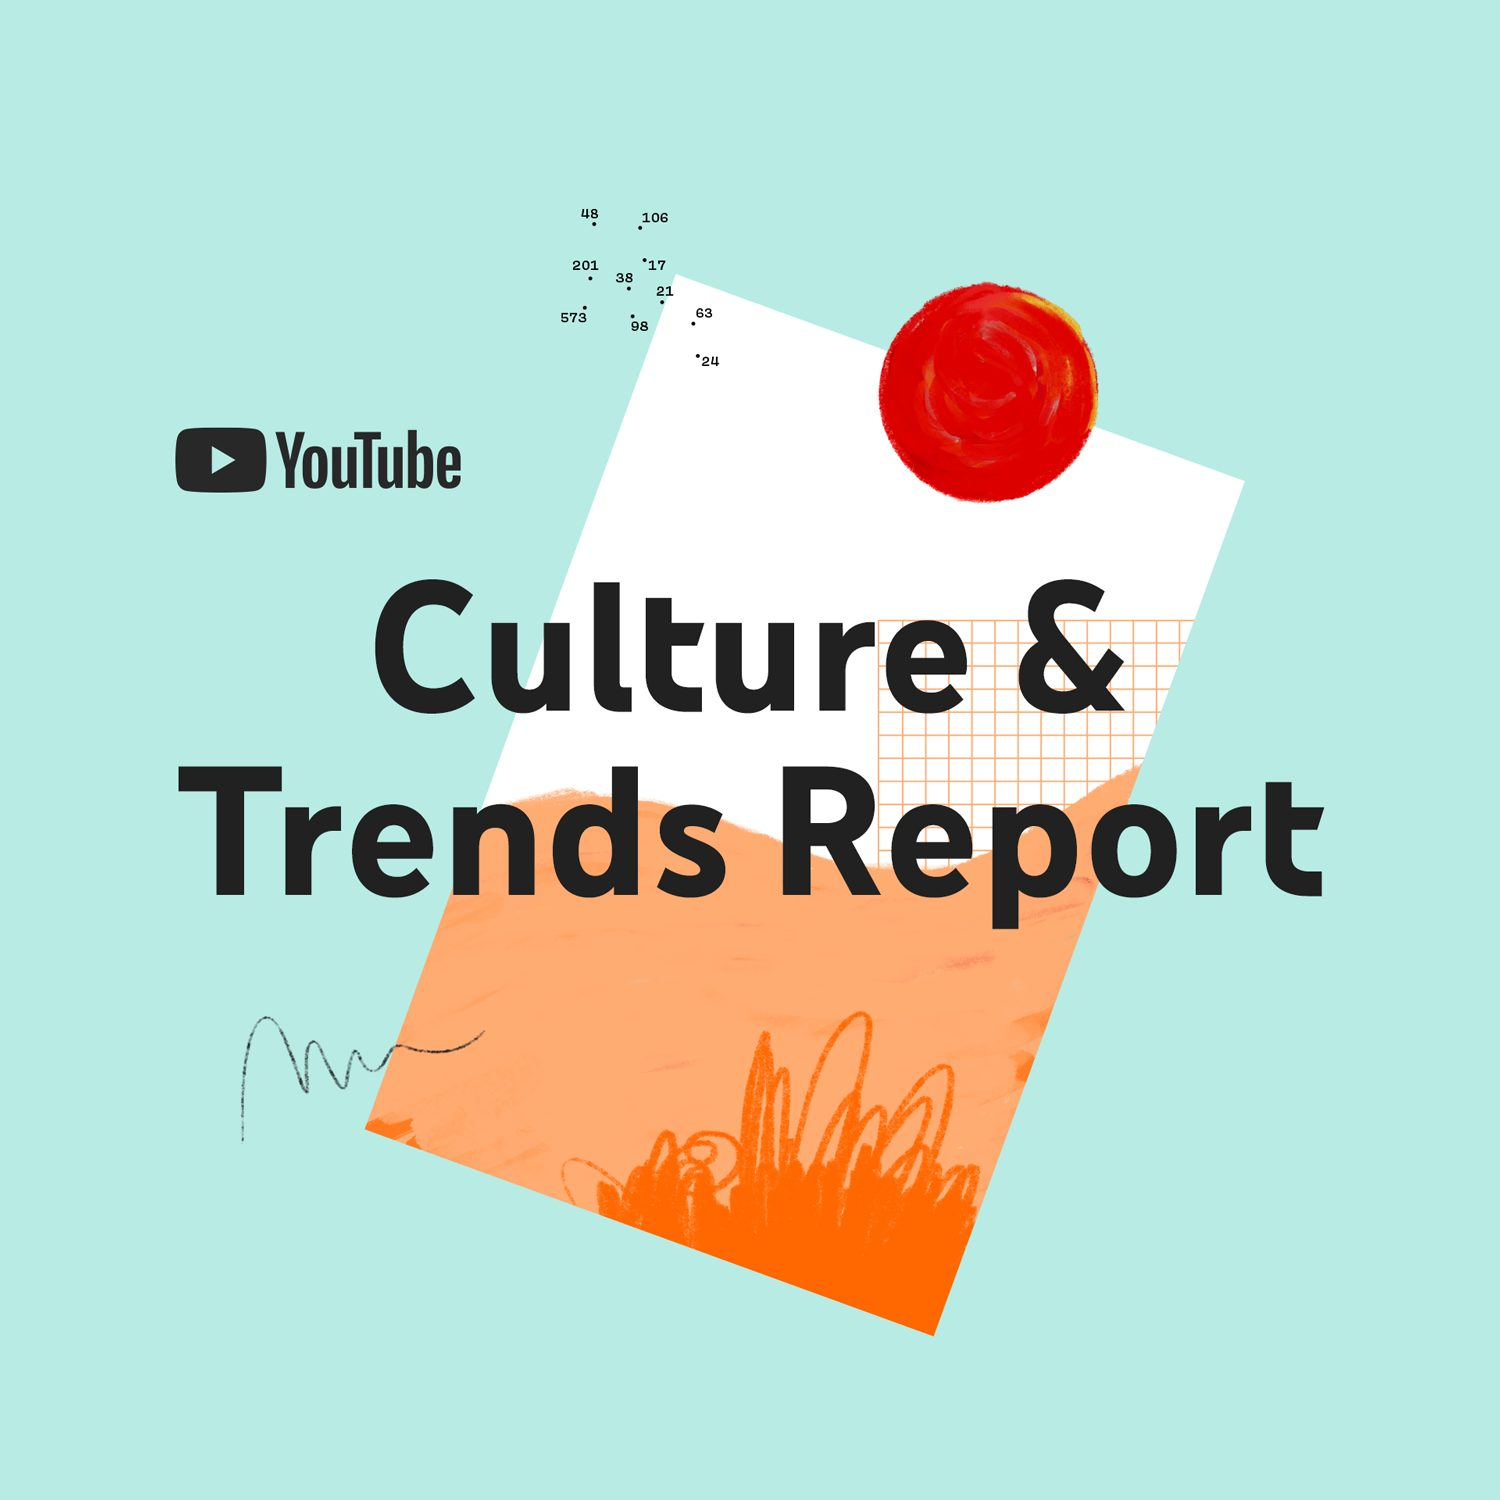 YouTube Culture & Trends Report